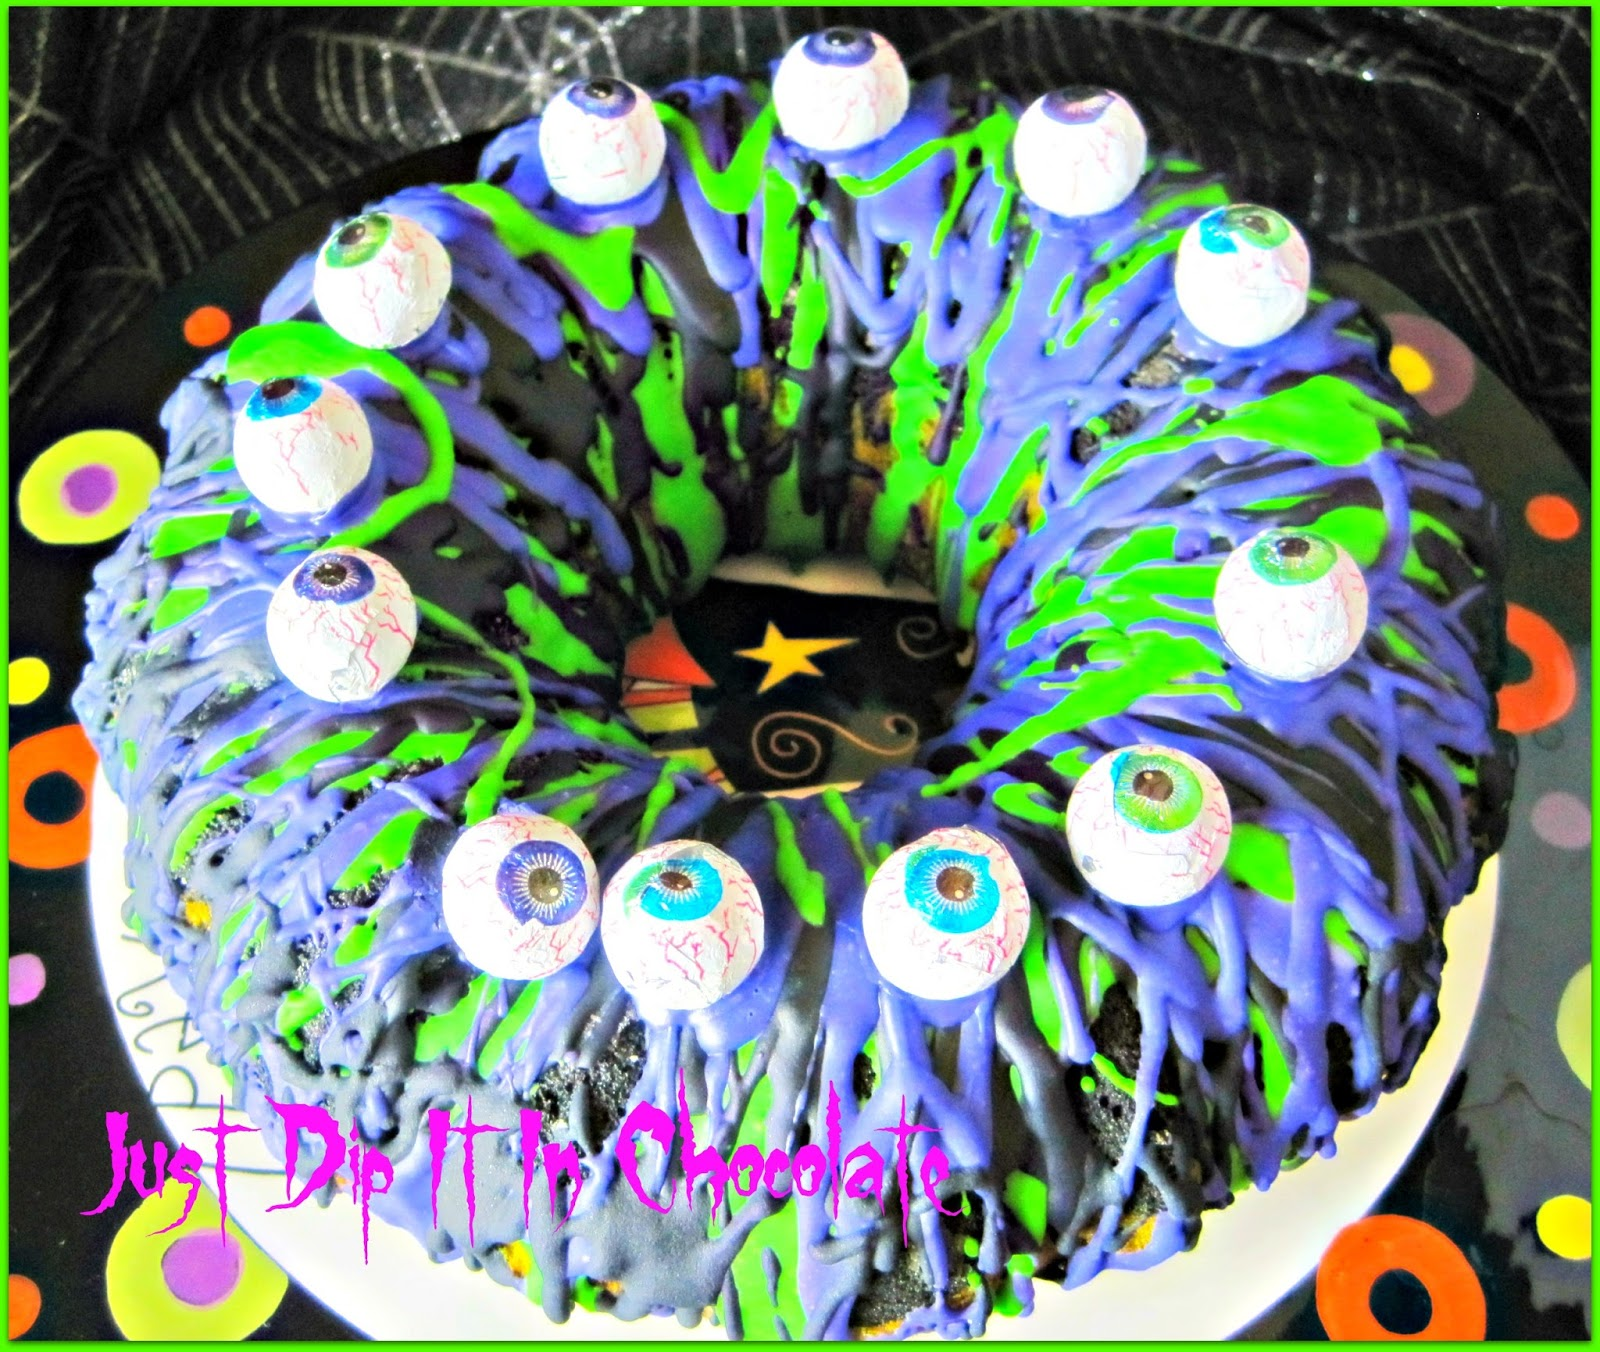 Halloween Bundt Cake Decorations Just Dip It In Chocolate Eye Of Newt Halloween Bundt Cake Recipe